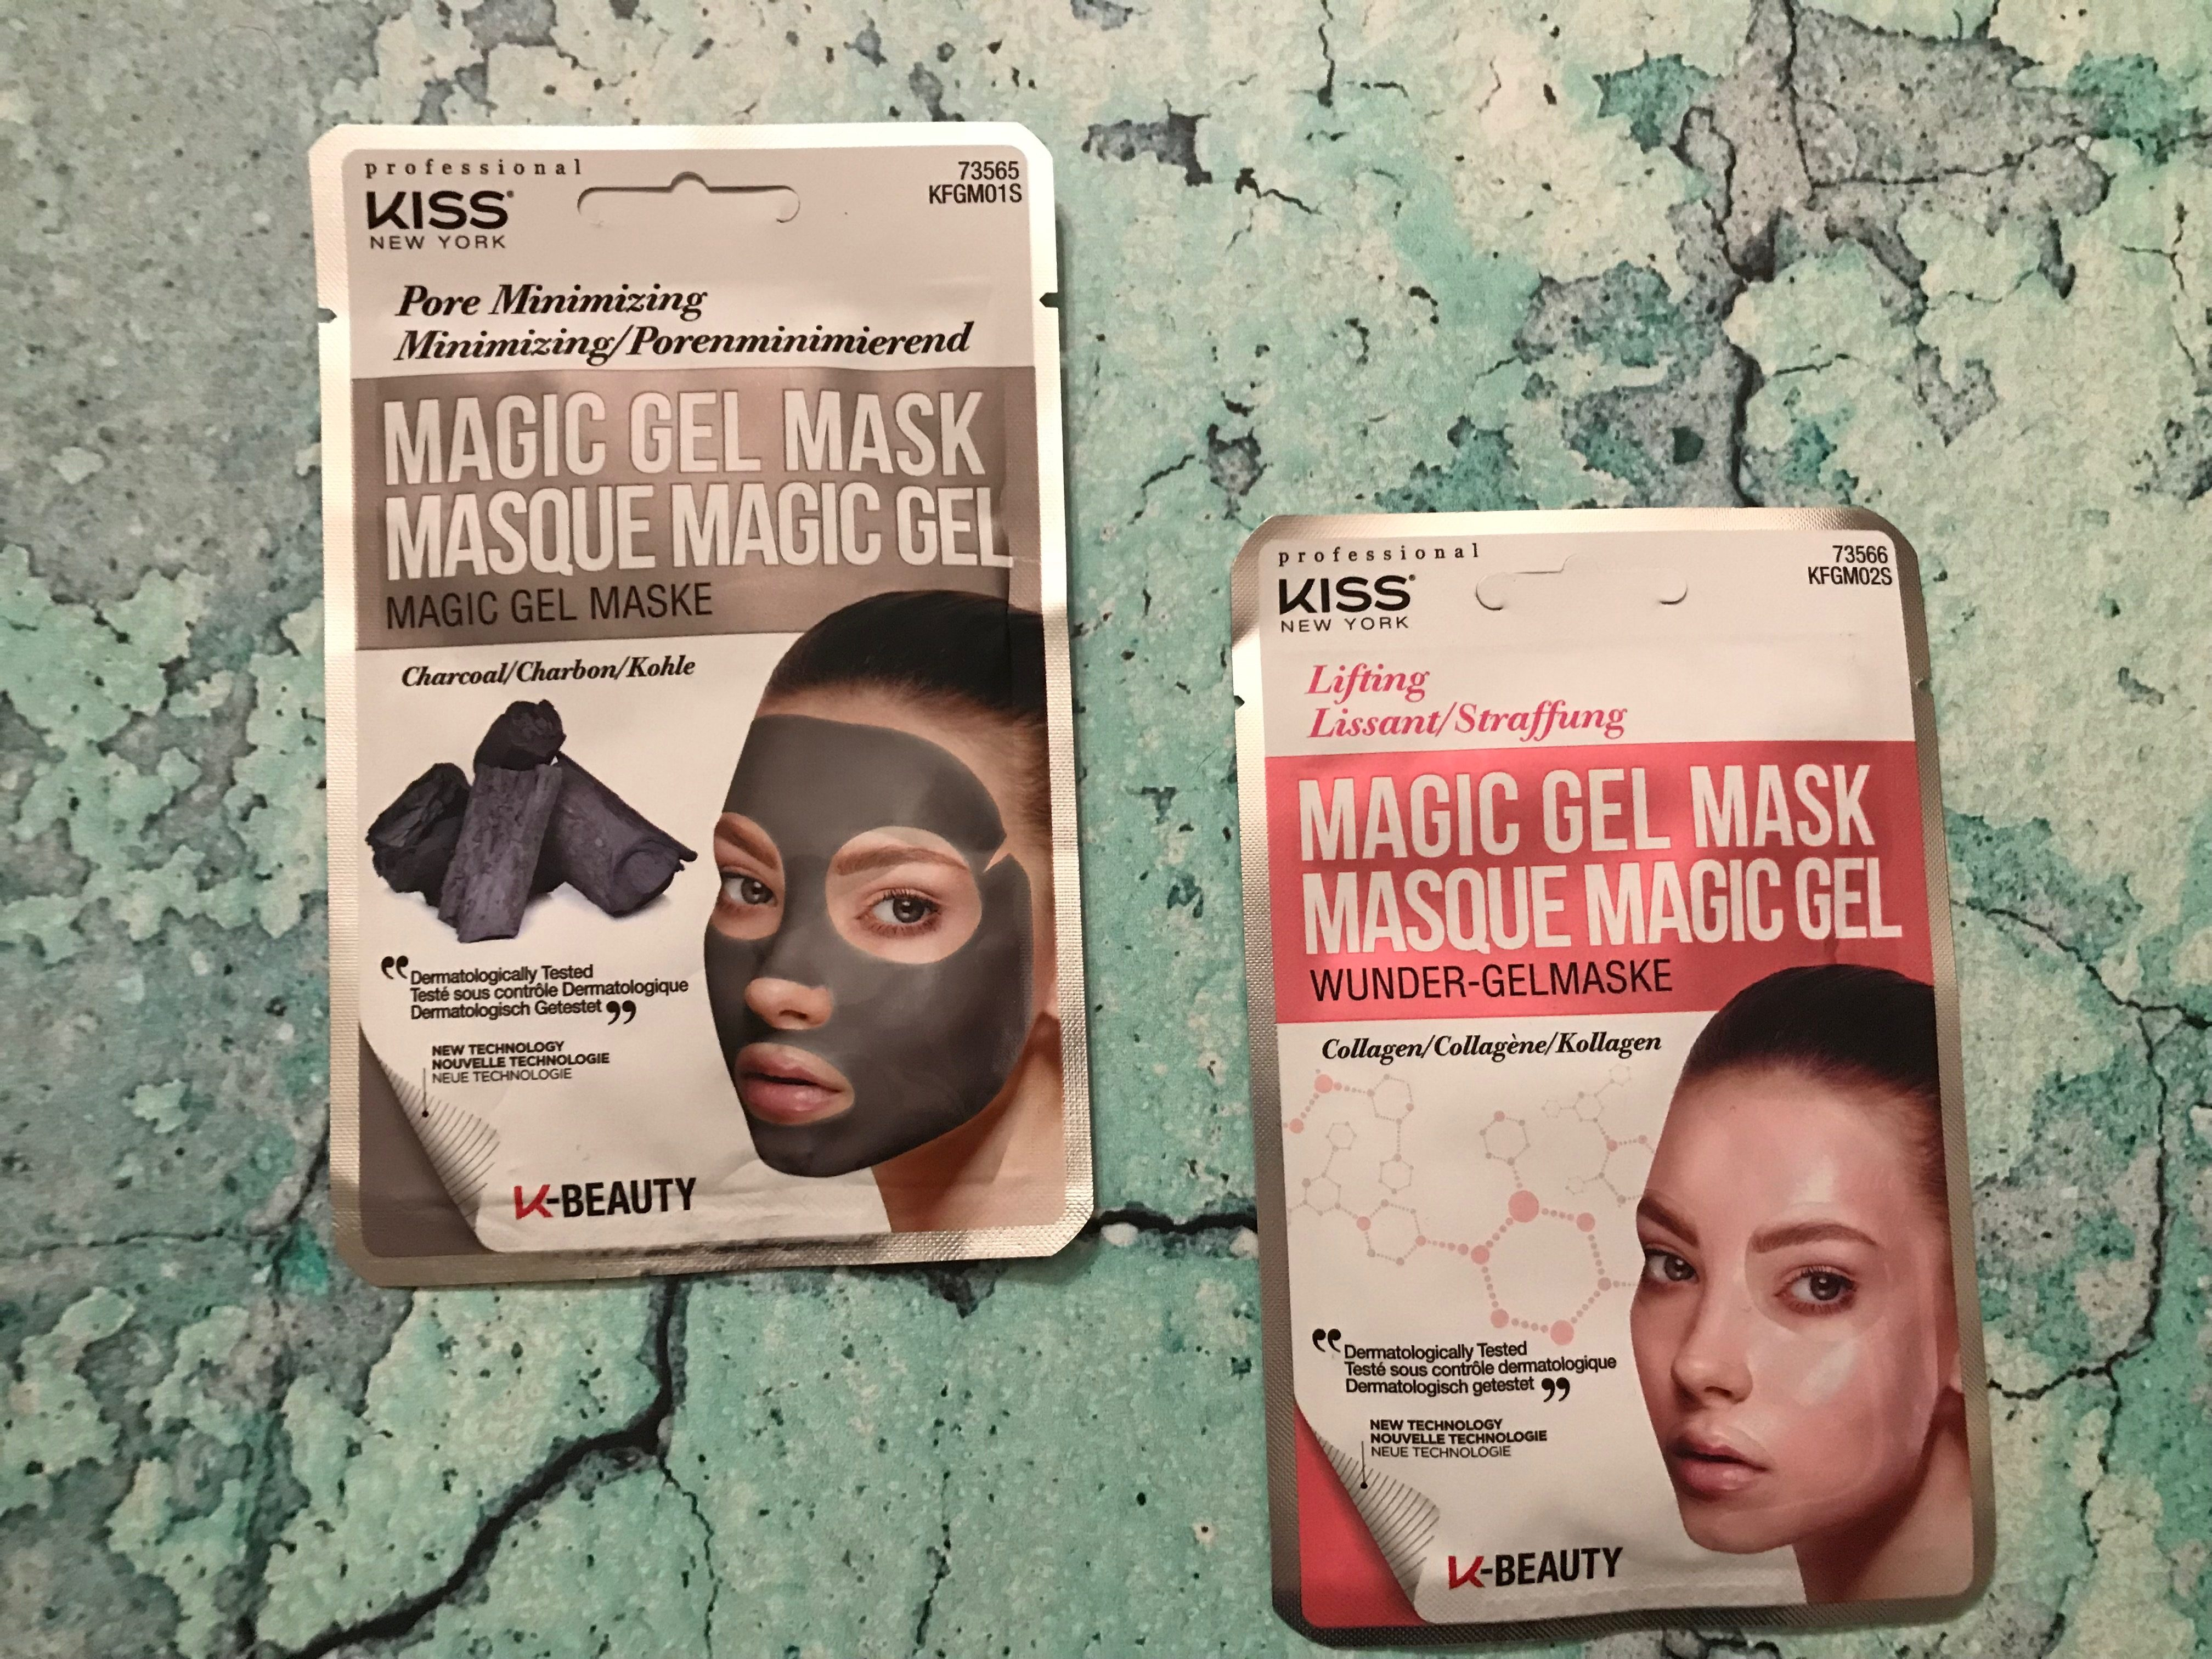 I really enjoy doing nice things for my face, and sheet masks are a nice  way to step back from everything to just treat myself!